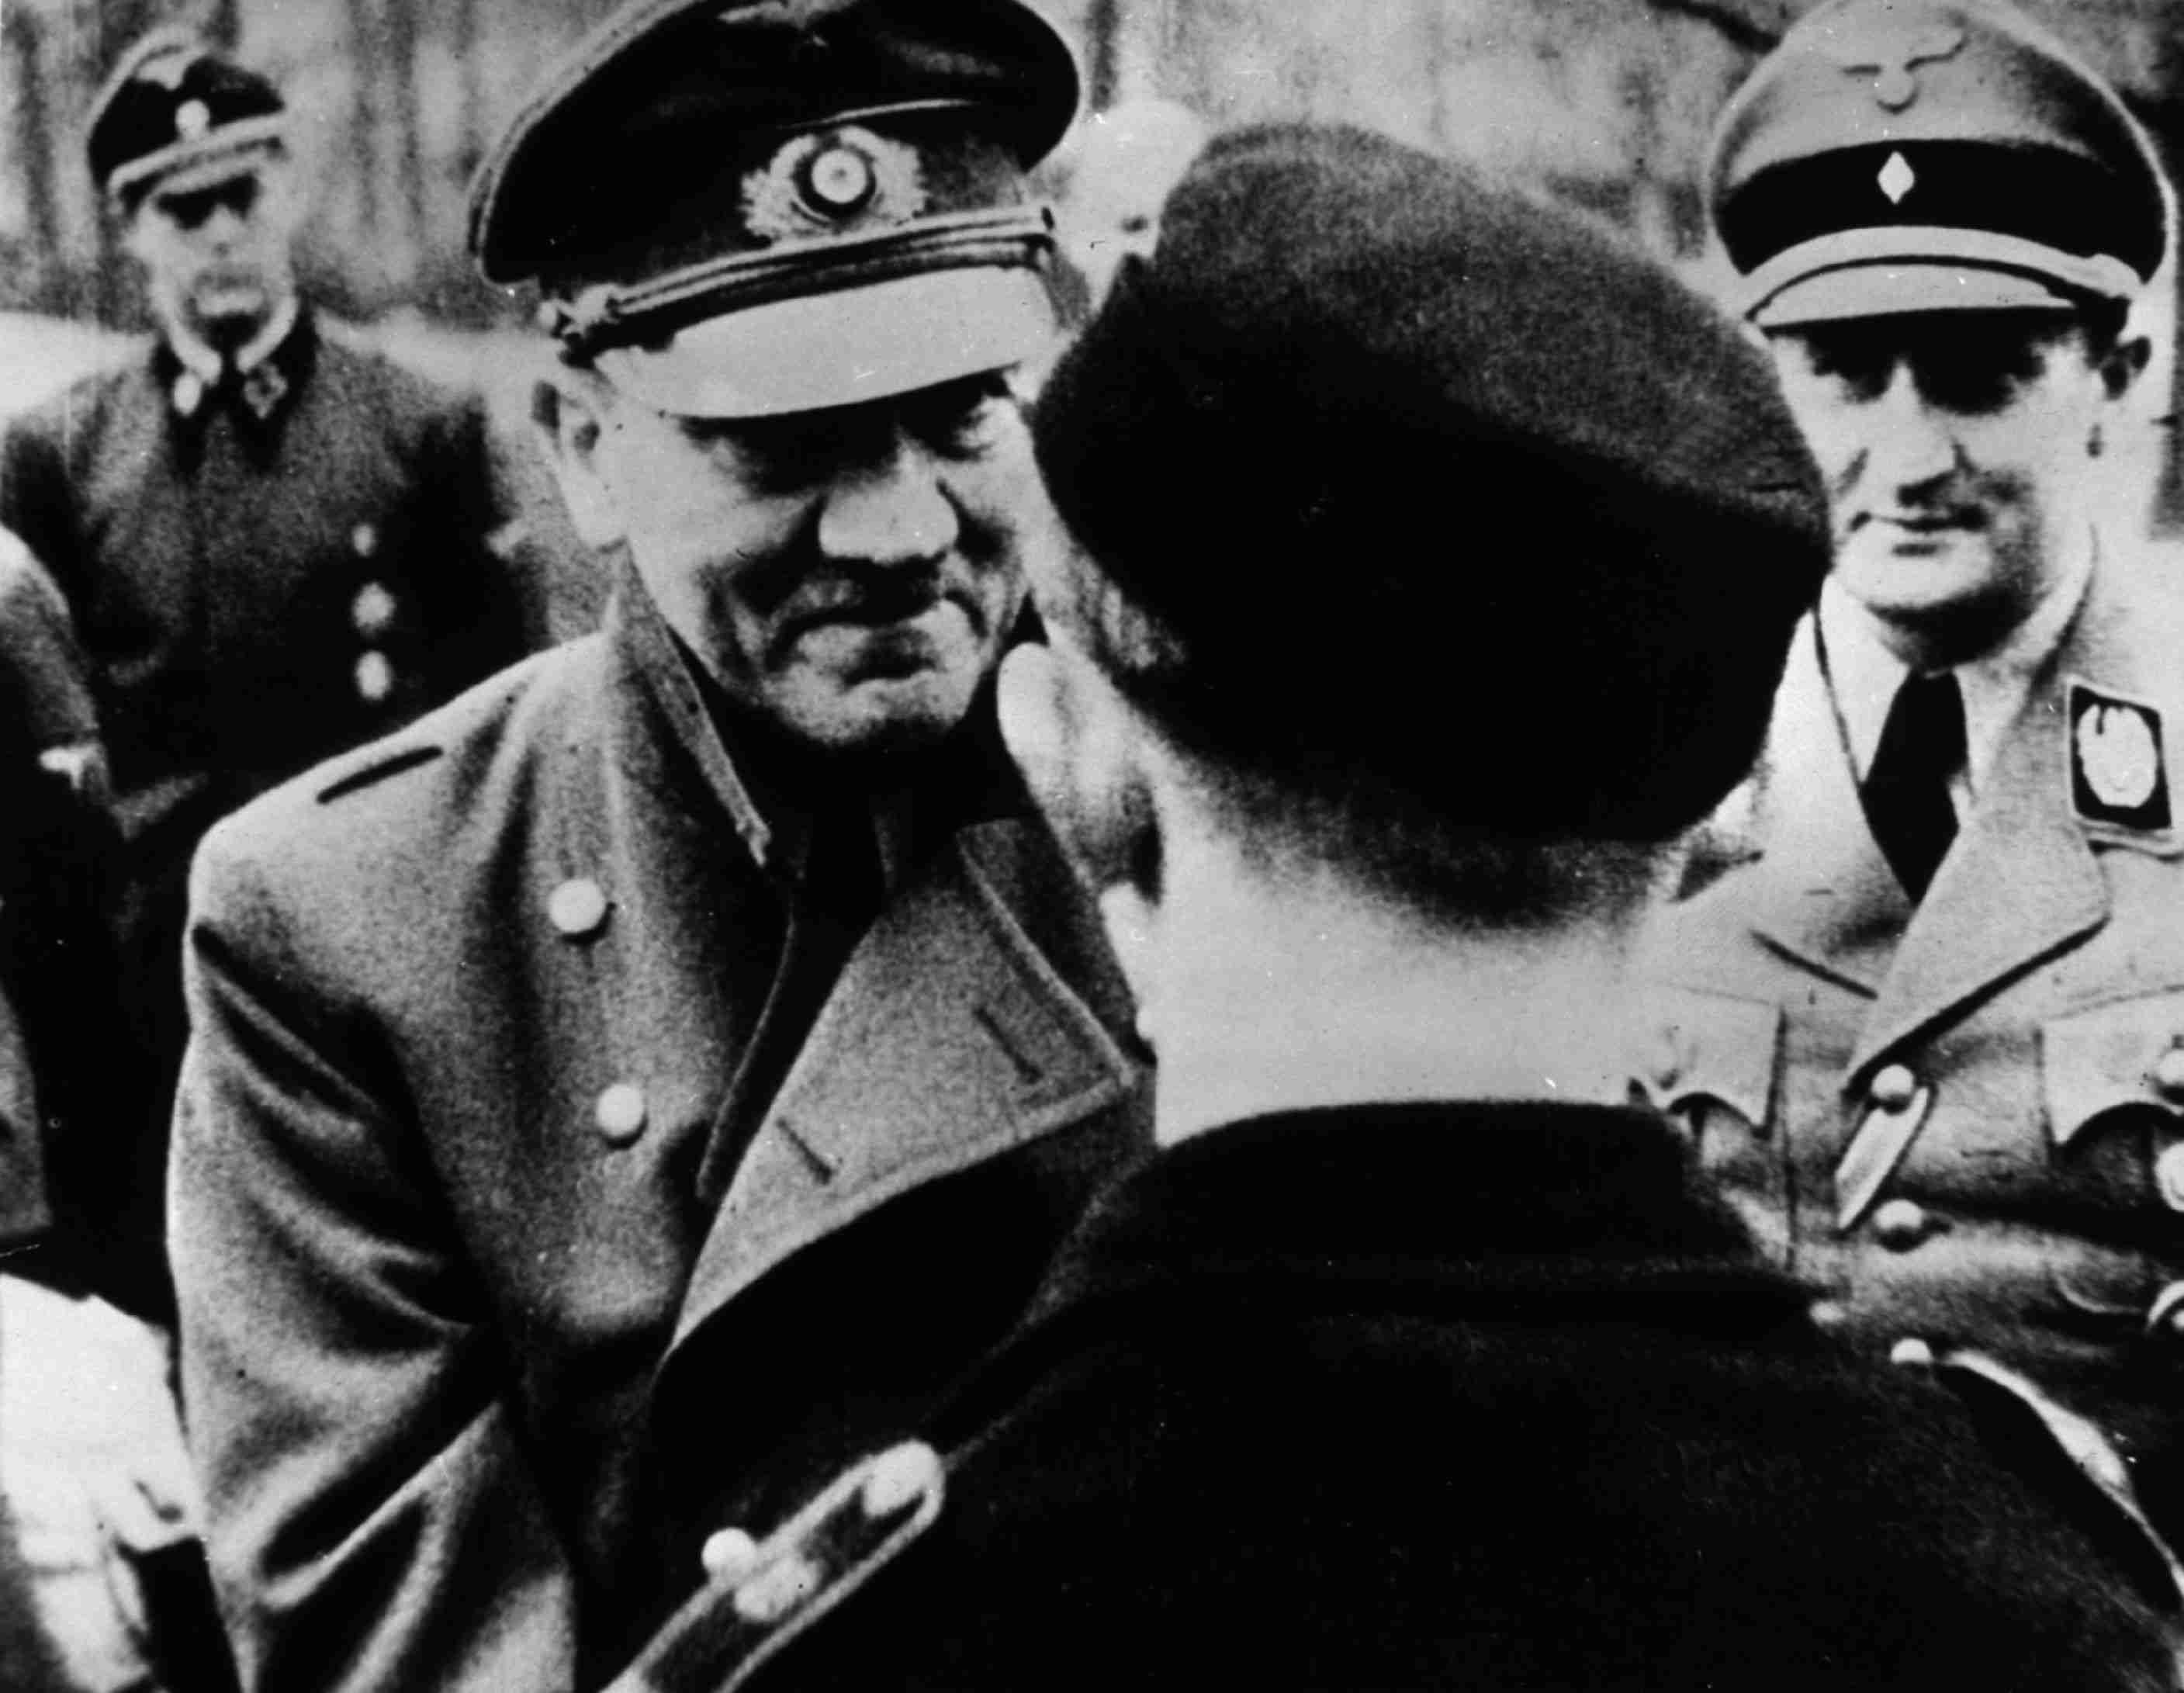 In his last official photo, Adolf Hitler leaves the safety of his bunker to award decorations to members of Hitler Youth.